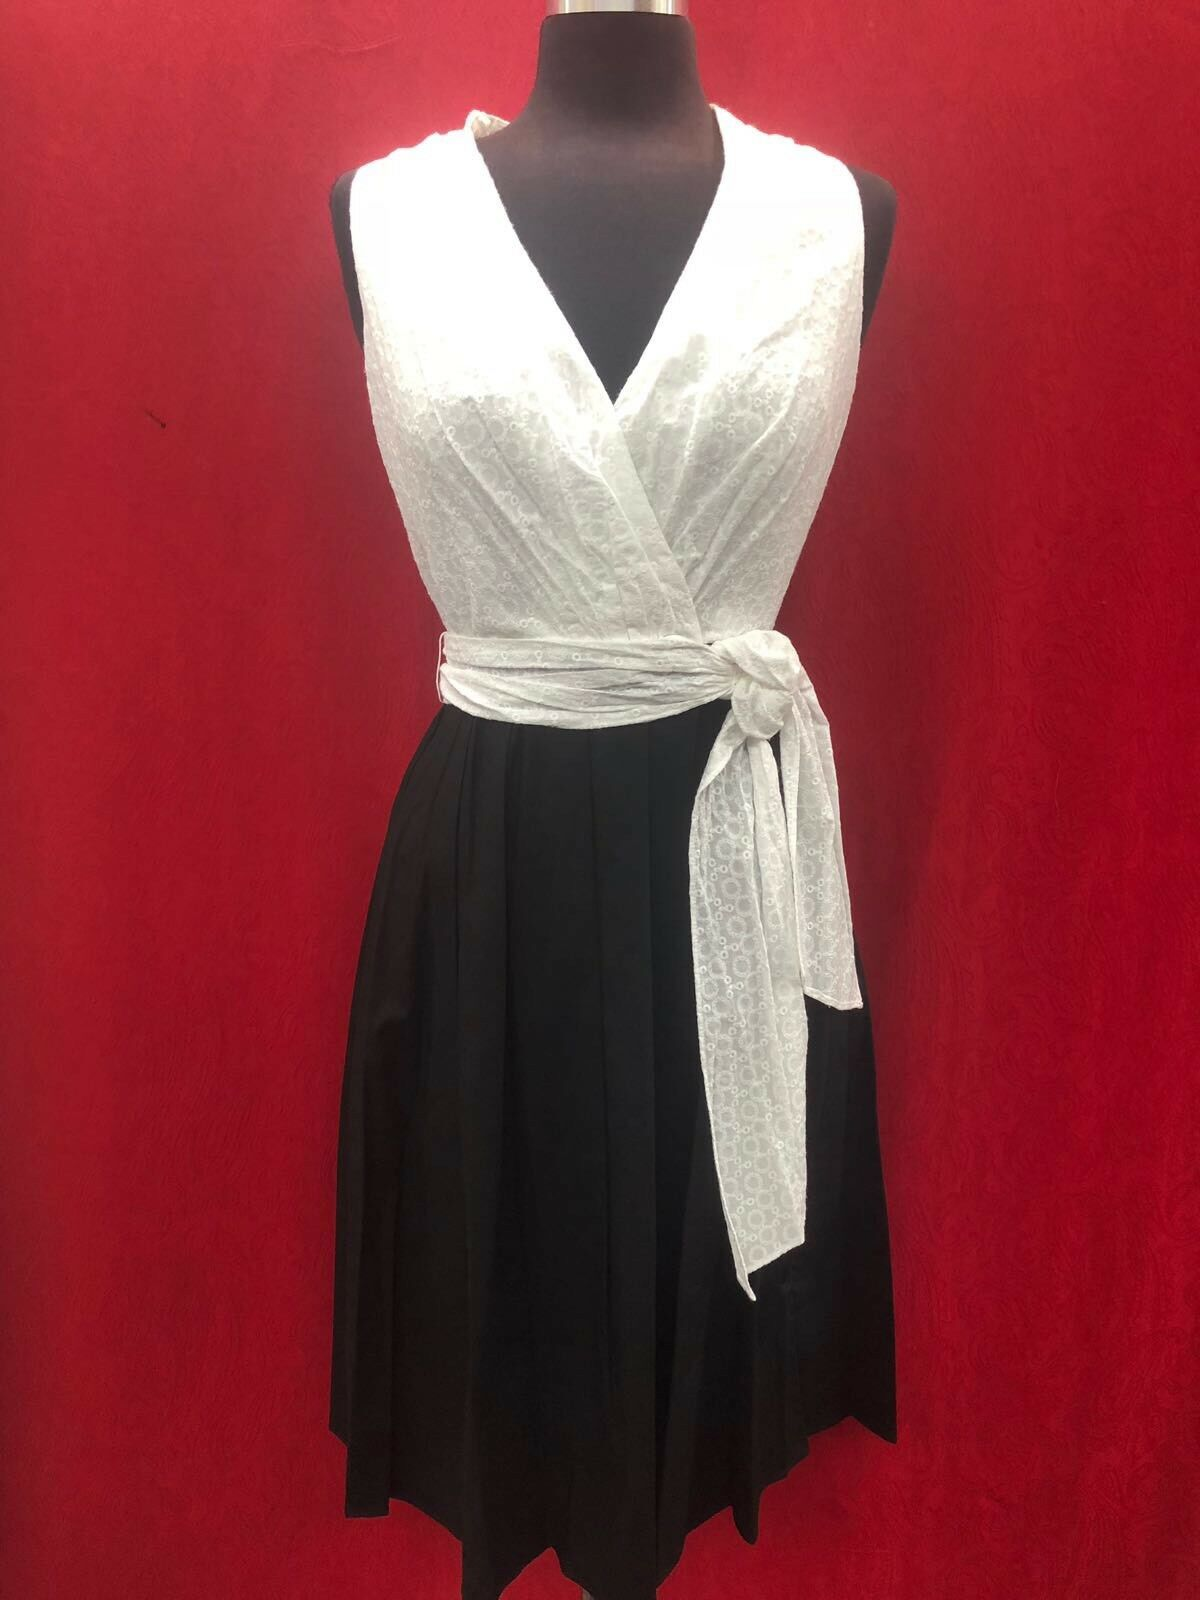 ELLEN TRACY COTTON DRESS LENGTH 39  NEW WITH TAG RETAIL 149 SIZE 10